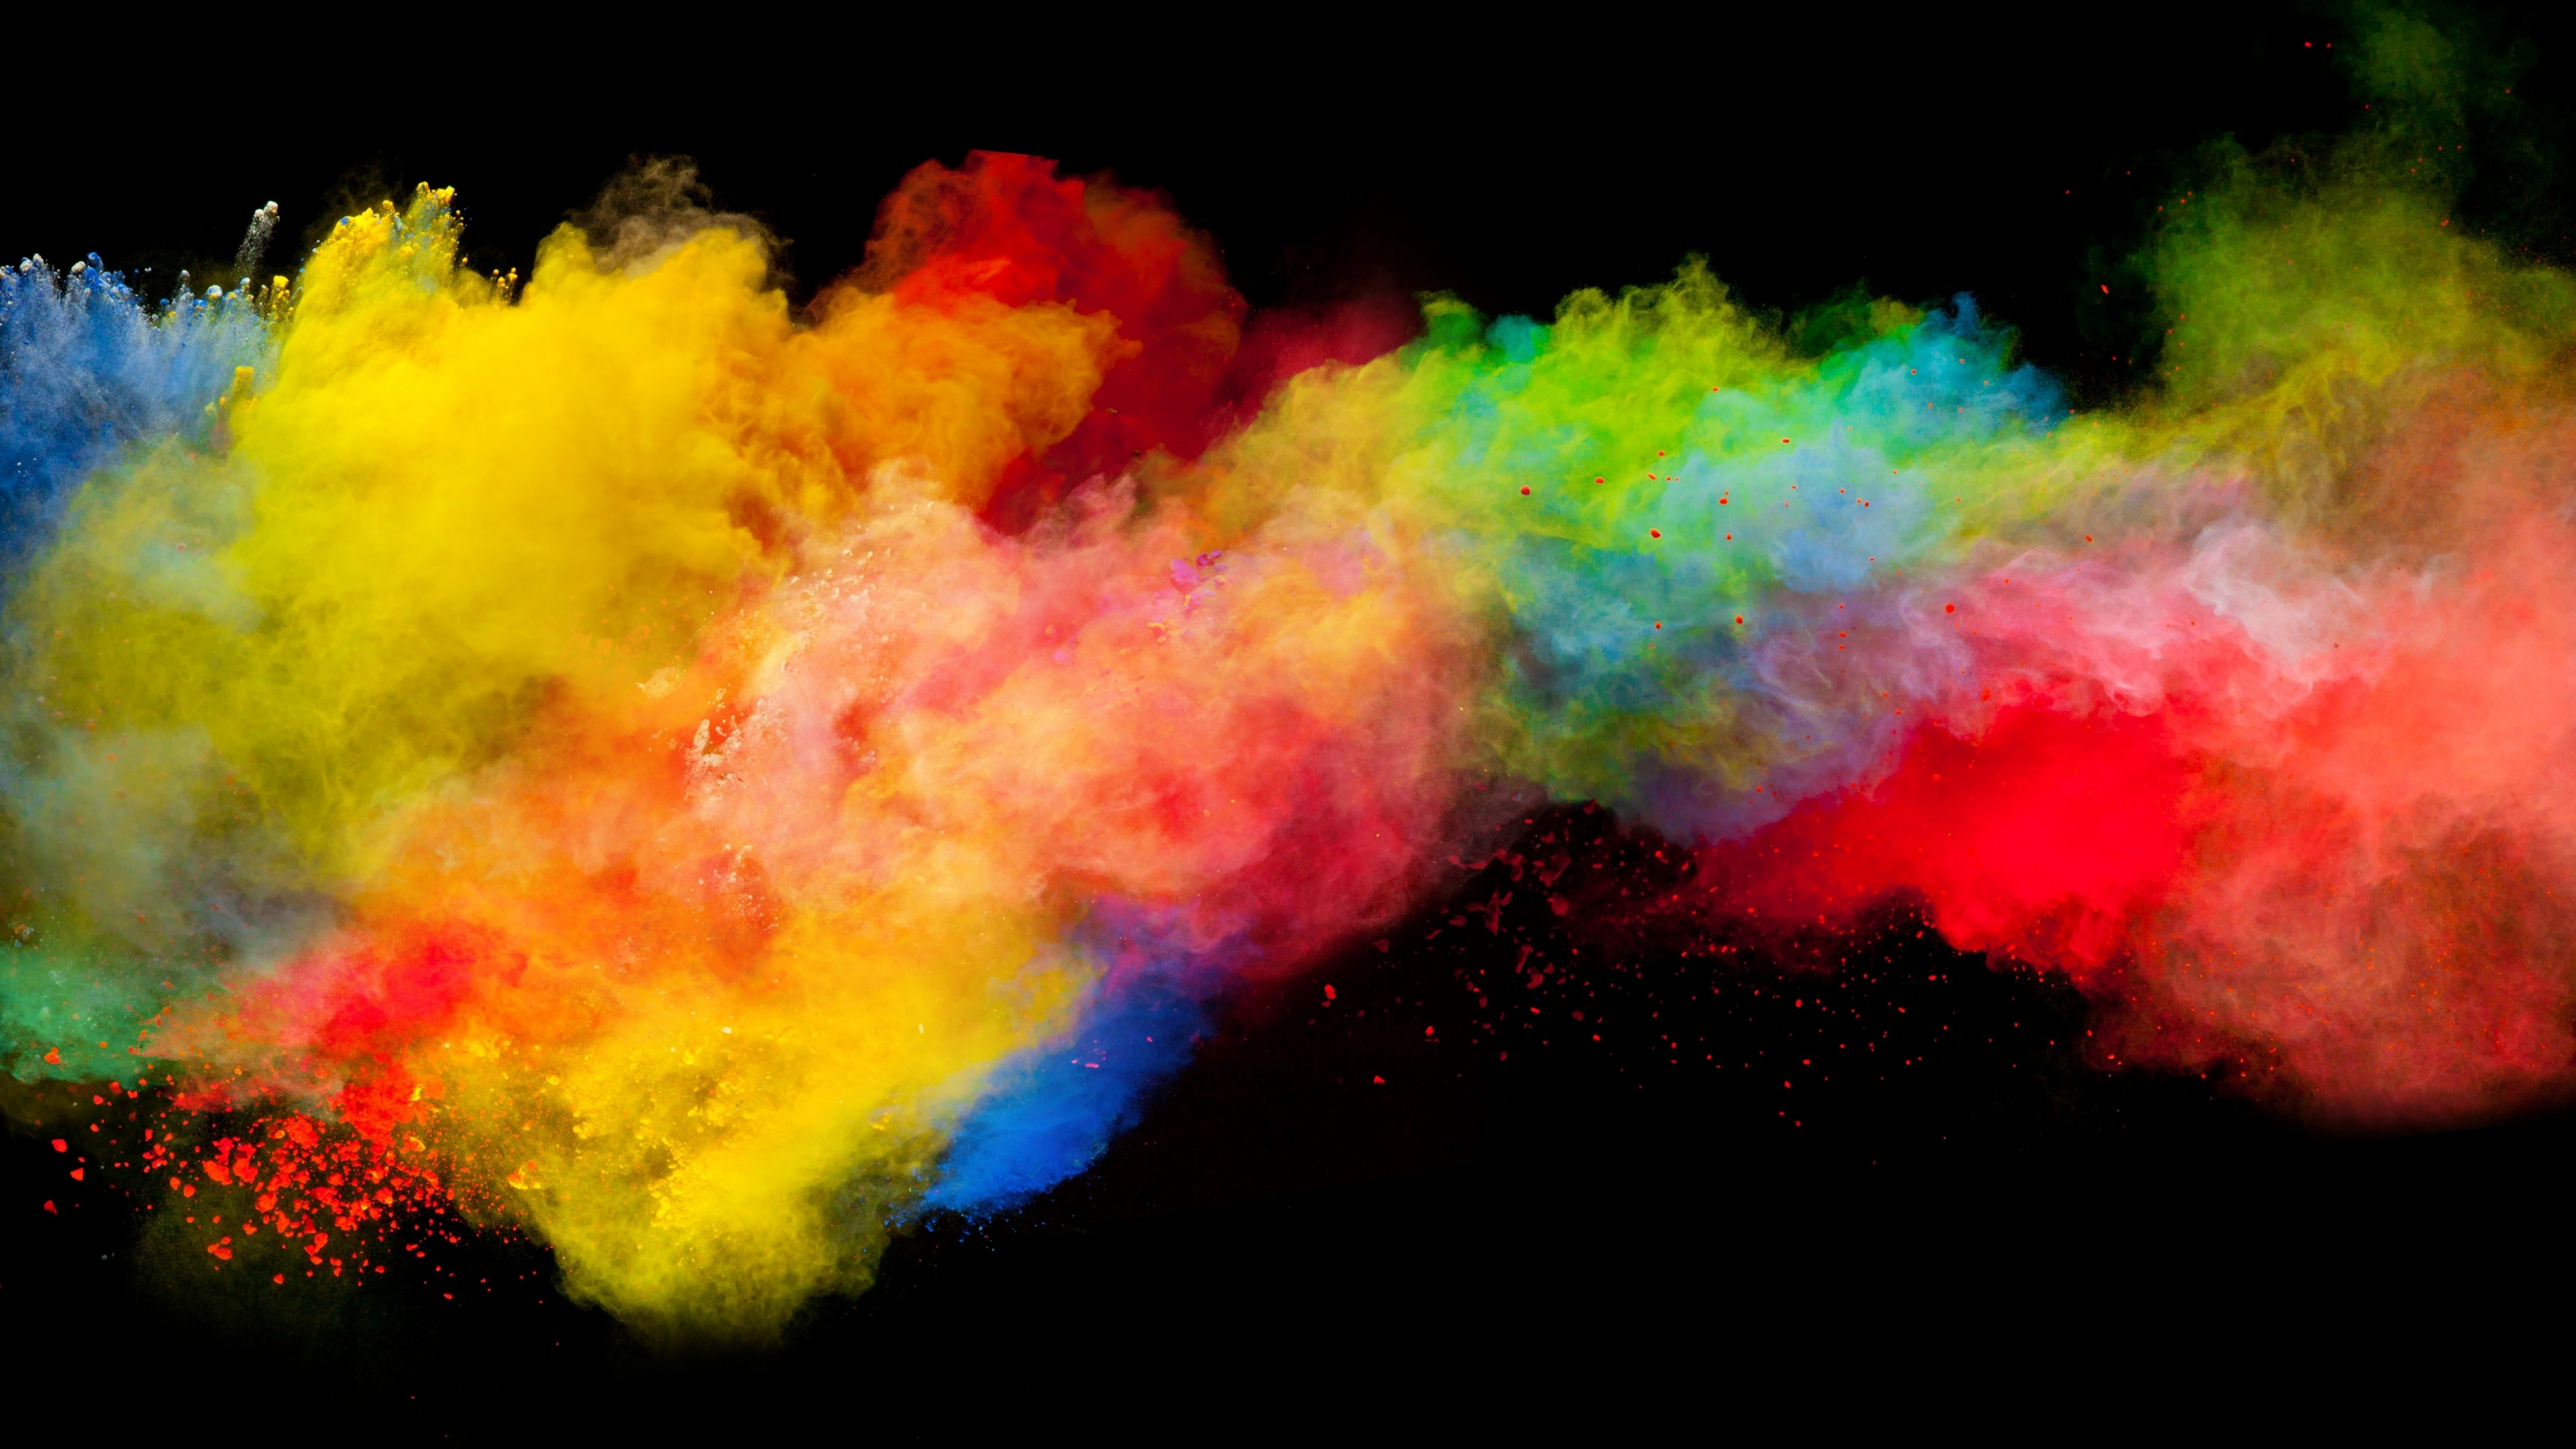 Download 3840x2160 Wallpaper Colorful, Powder, Explosion